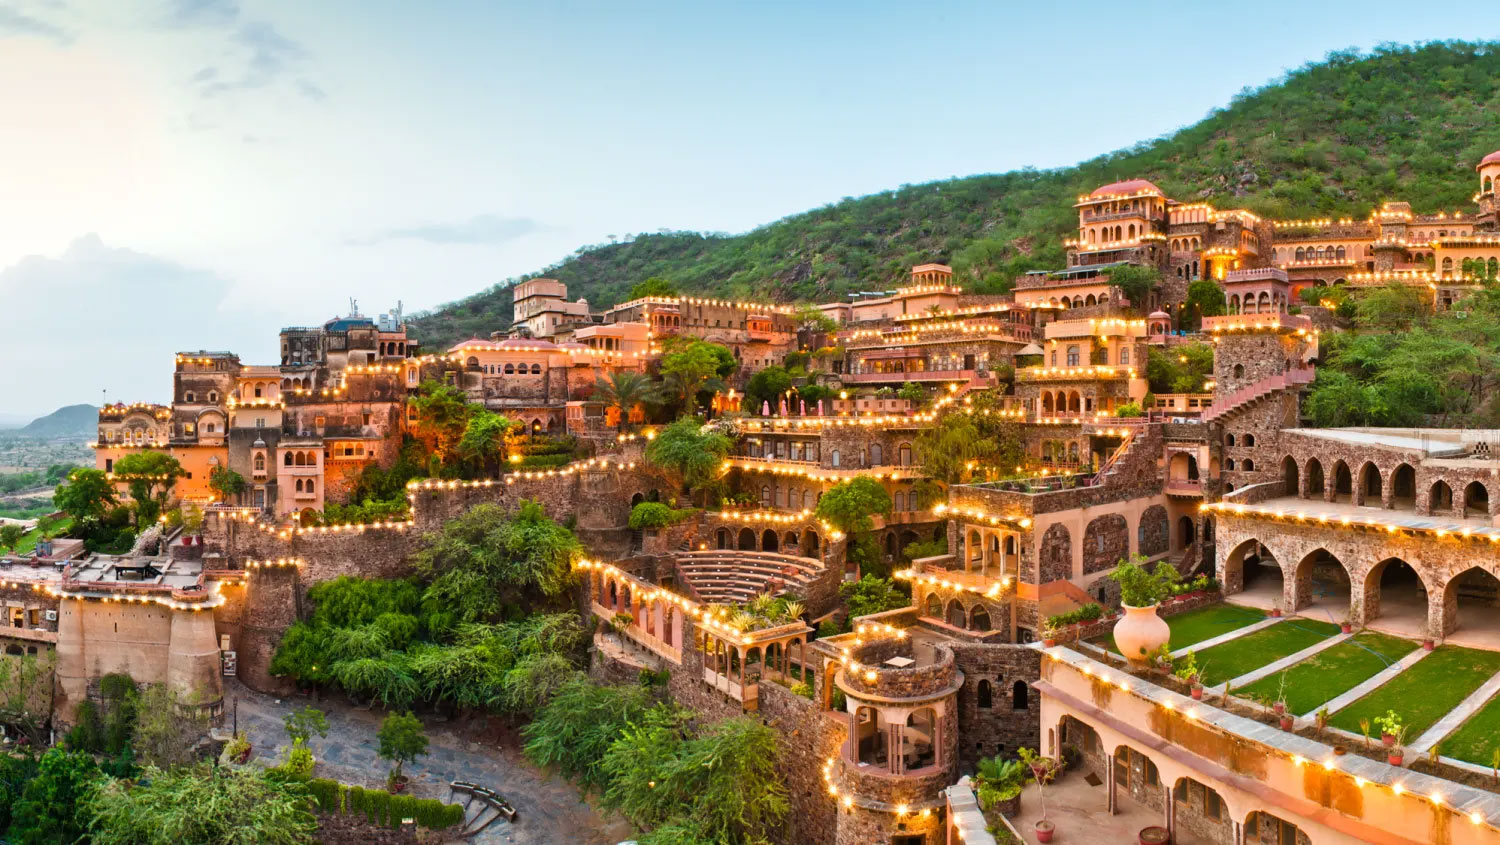 Rajasthan Tours Packages | Best Rajasthan Tours And Travels | Rajasthan Tour Operator | Rajasthan Holiday Packages - Tirupati Holidays